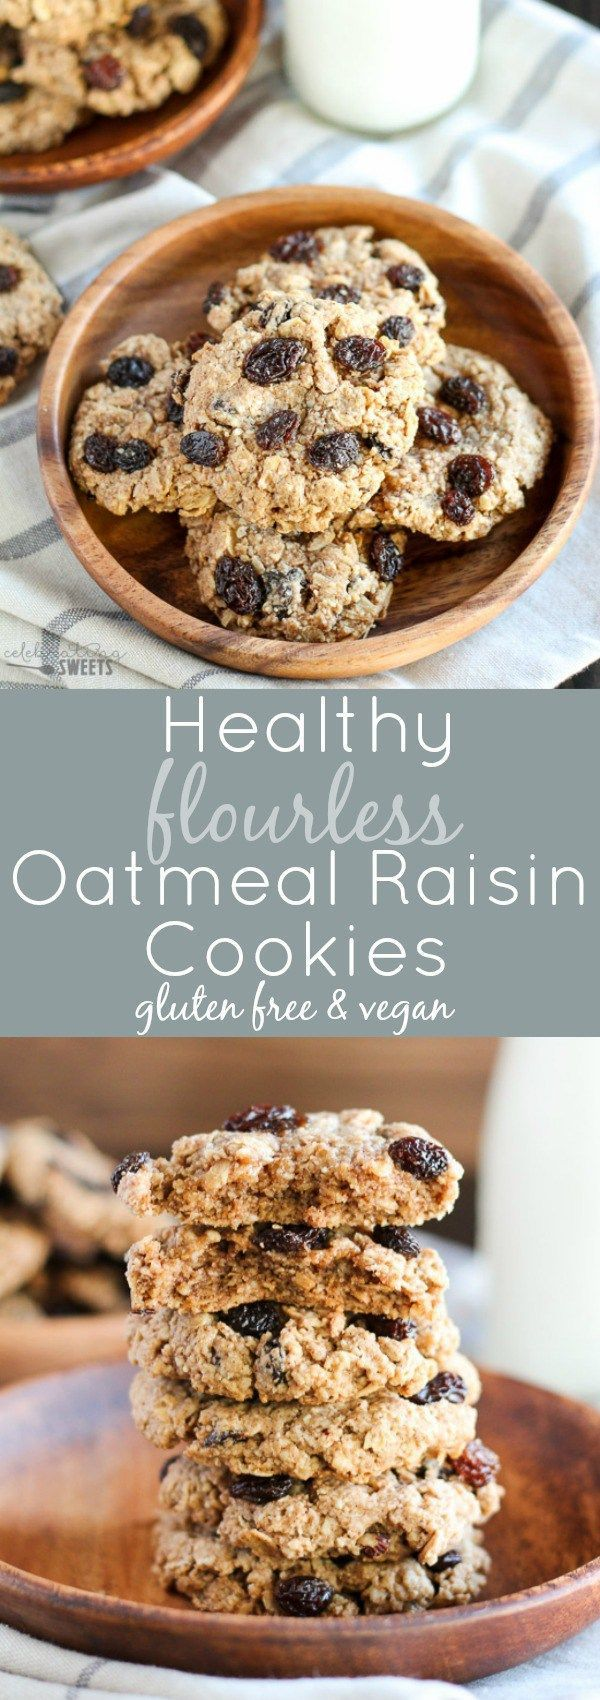 Flourless Oatmeal Raisin Cookies- Chewy cookies made with oats, almond flour, almond butter, maple syrup and coconut oil. Gluten free and vegan.